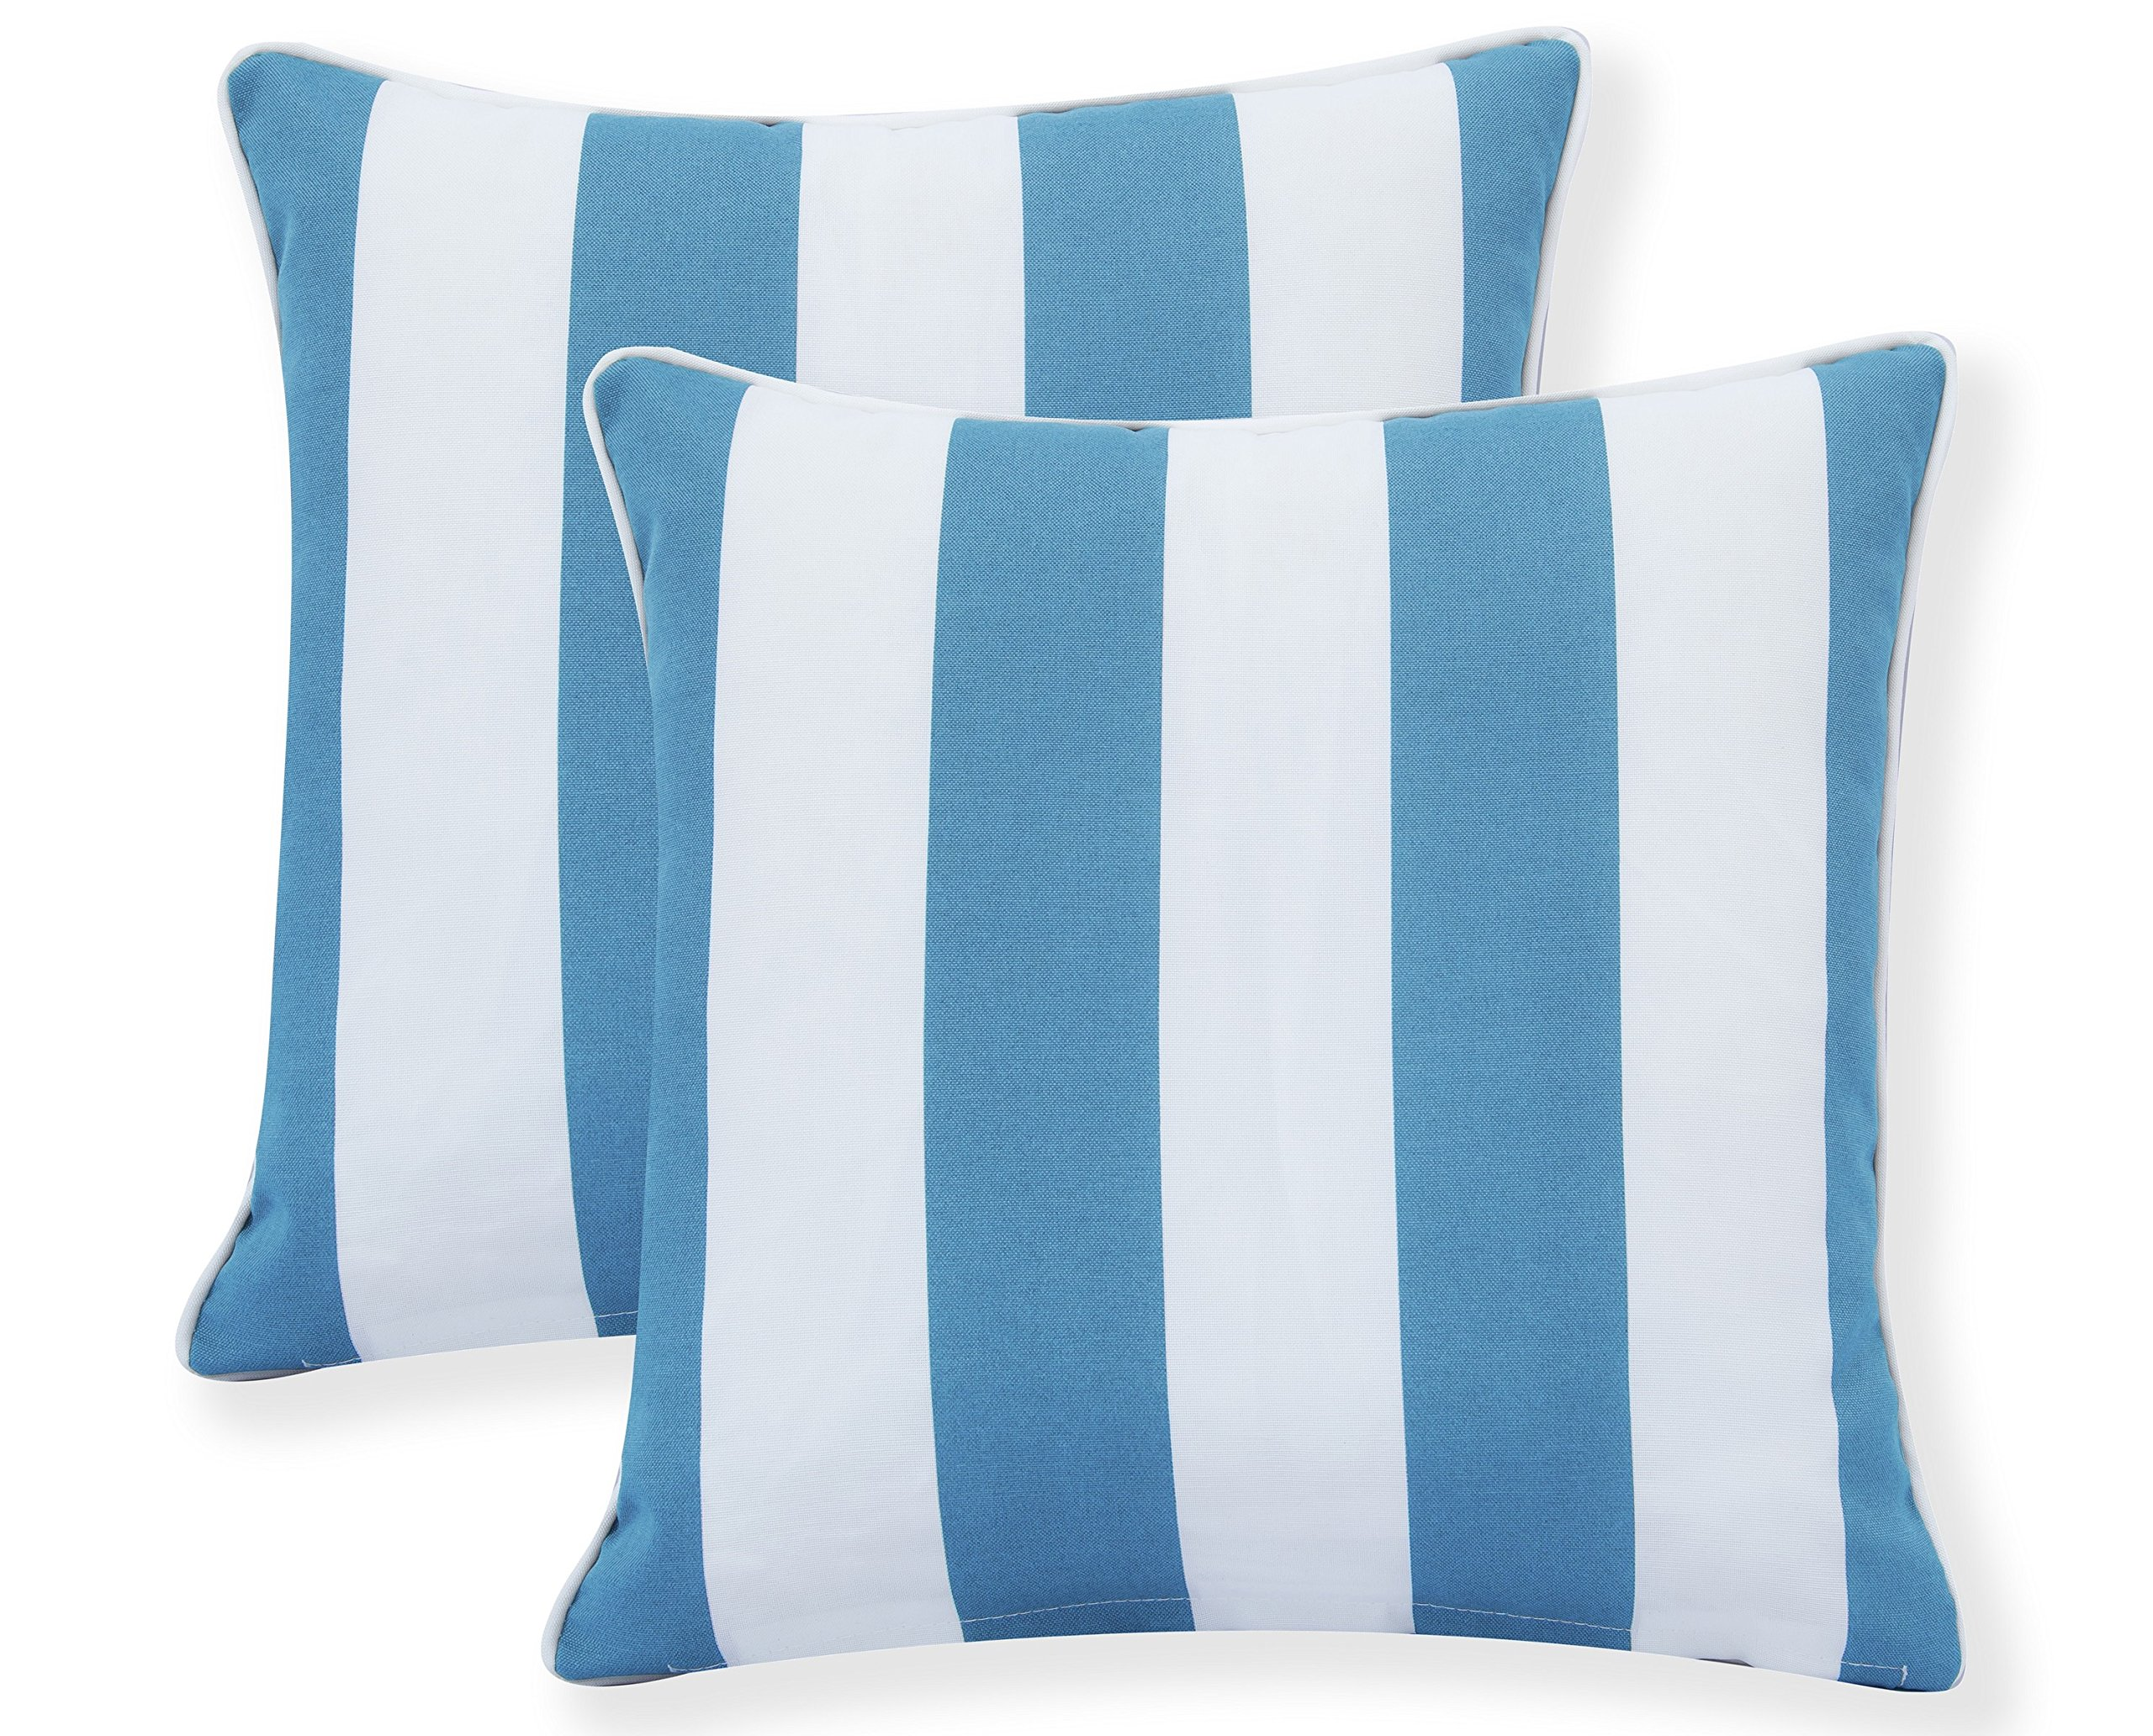 Decor Venue Water Resistant Indoor/Outdoor Patio Decorative Stripe Throw Pillow Cushion - Set of 2-18'' x 18'' - Light Blue by Decor Venue